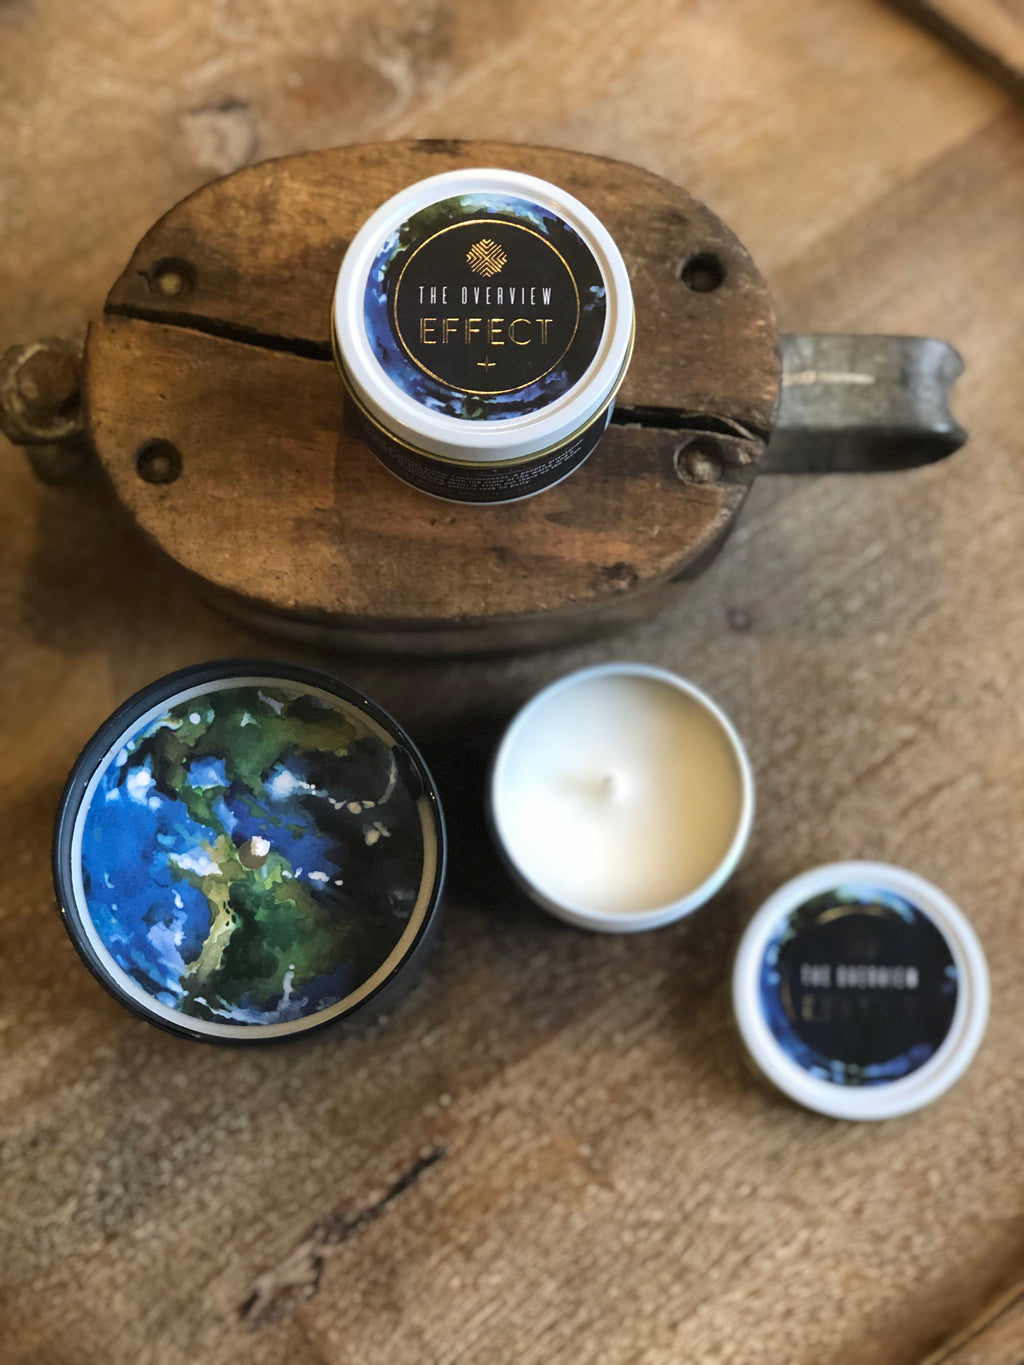 The Overview Effect Candle